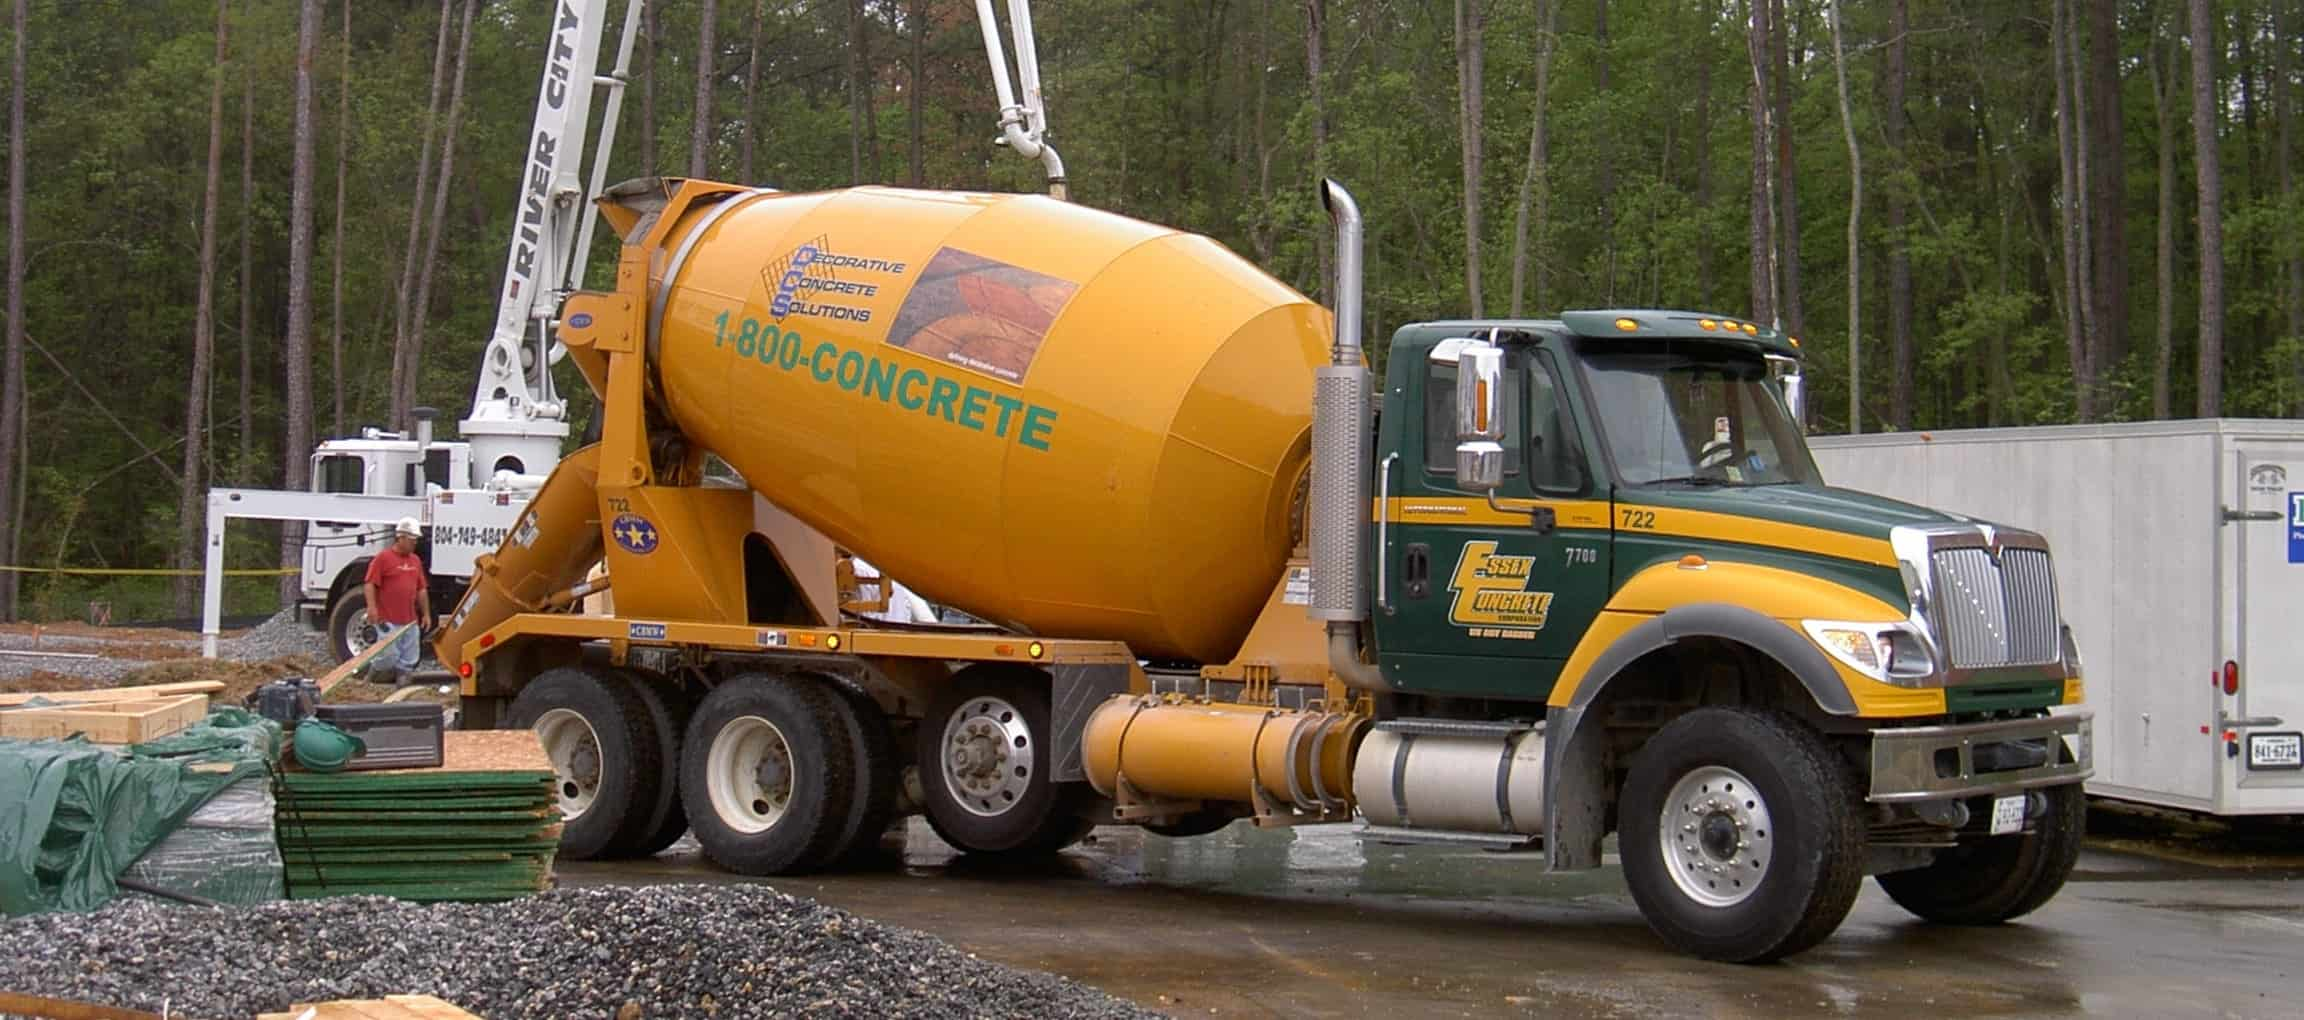 1-800-CONCRETE |ESSEX CONCRETE at job site in Richmond VA